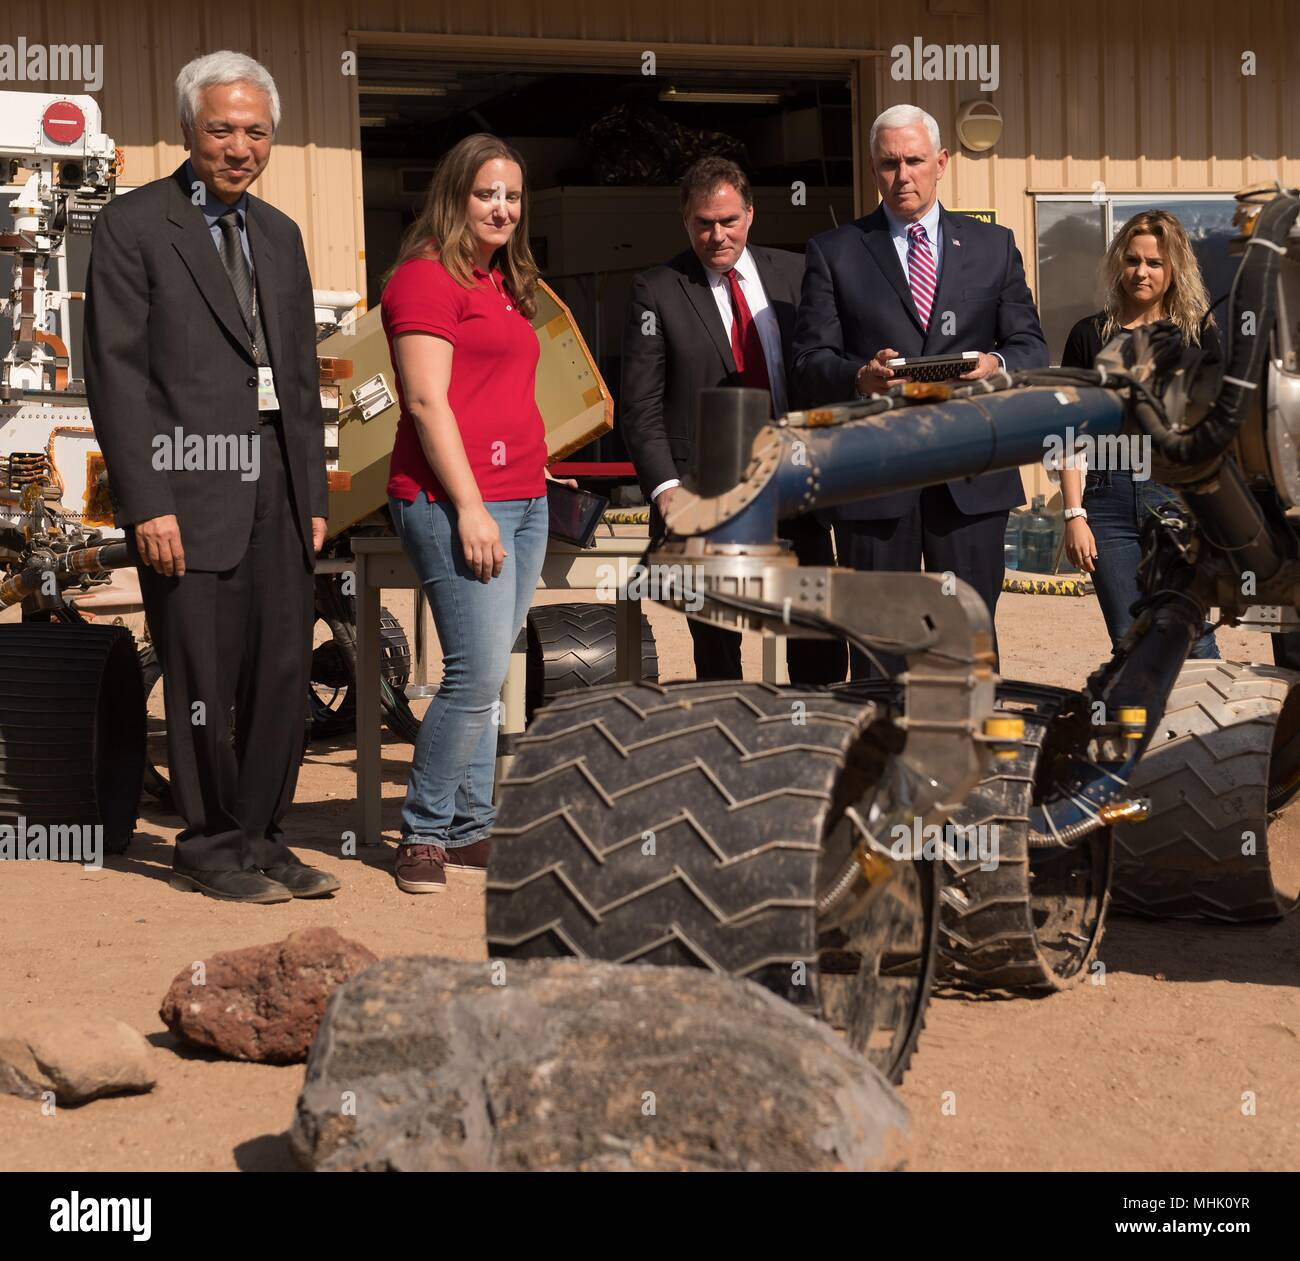 U.S. Vice President Mike Pence uses a remote control to drive a rover nicknamed 'Scarecrow' during a visit to the NASA Jet Propulsion Laboratory Mars Yard April 28, 2018 in Pasadena, California. Standing from left to right are: NASA Mars Exploration Manager Li Fuk, Mars Curiosity Engineering Operations Team Chief Megan Lin, JPL Director Michael Watkins, Vice President Mike Pence, Karen Pence, daughter Charlotte Pence. - Stock Image